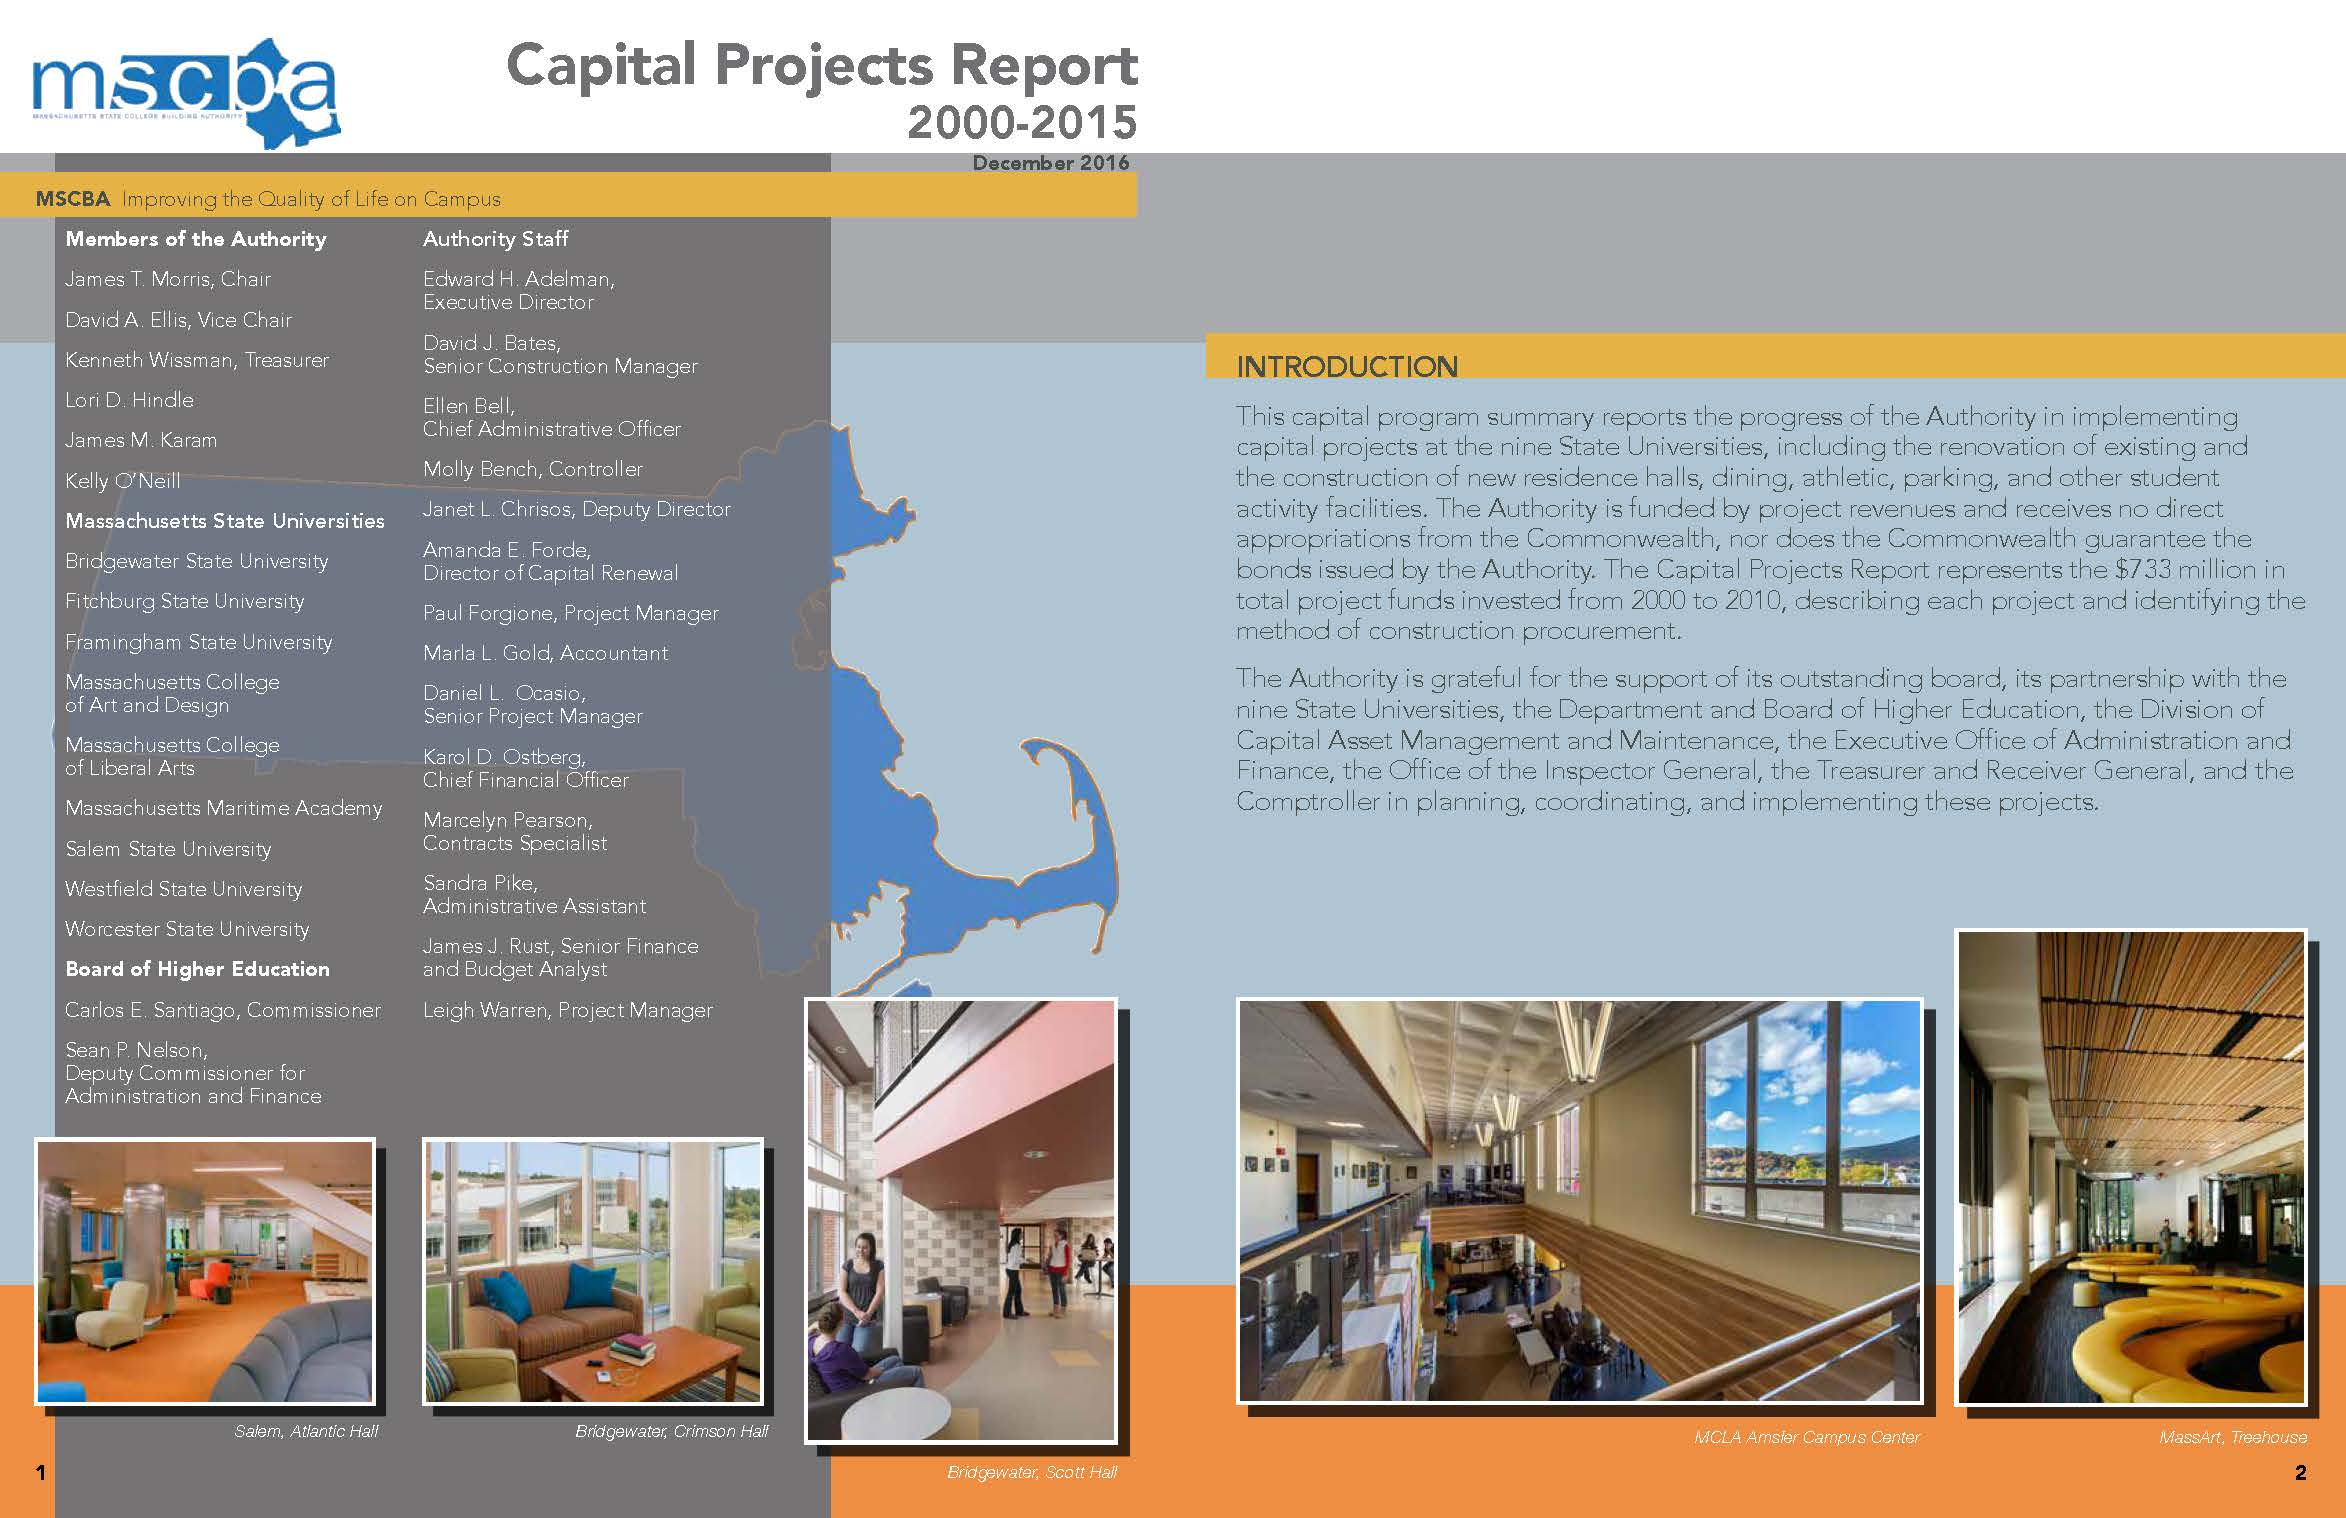 MSCBA_Capital Project Report_Dec2016_Page_02